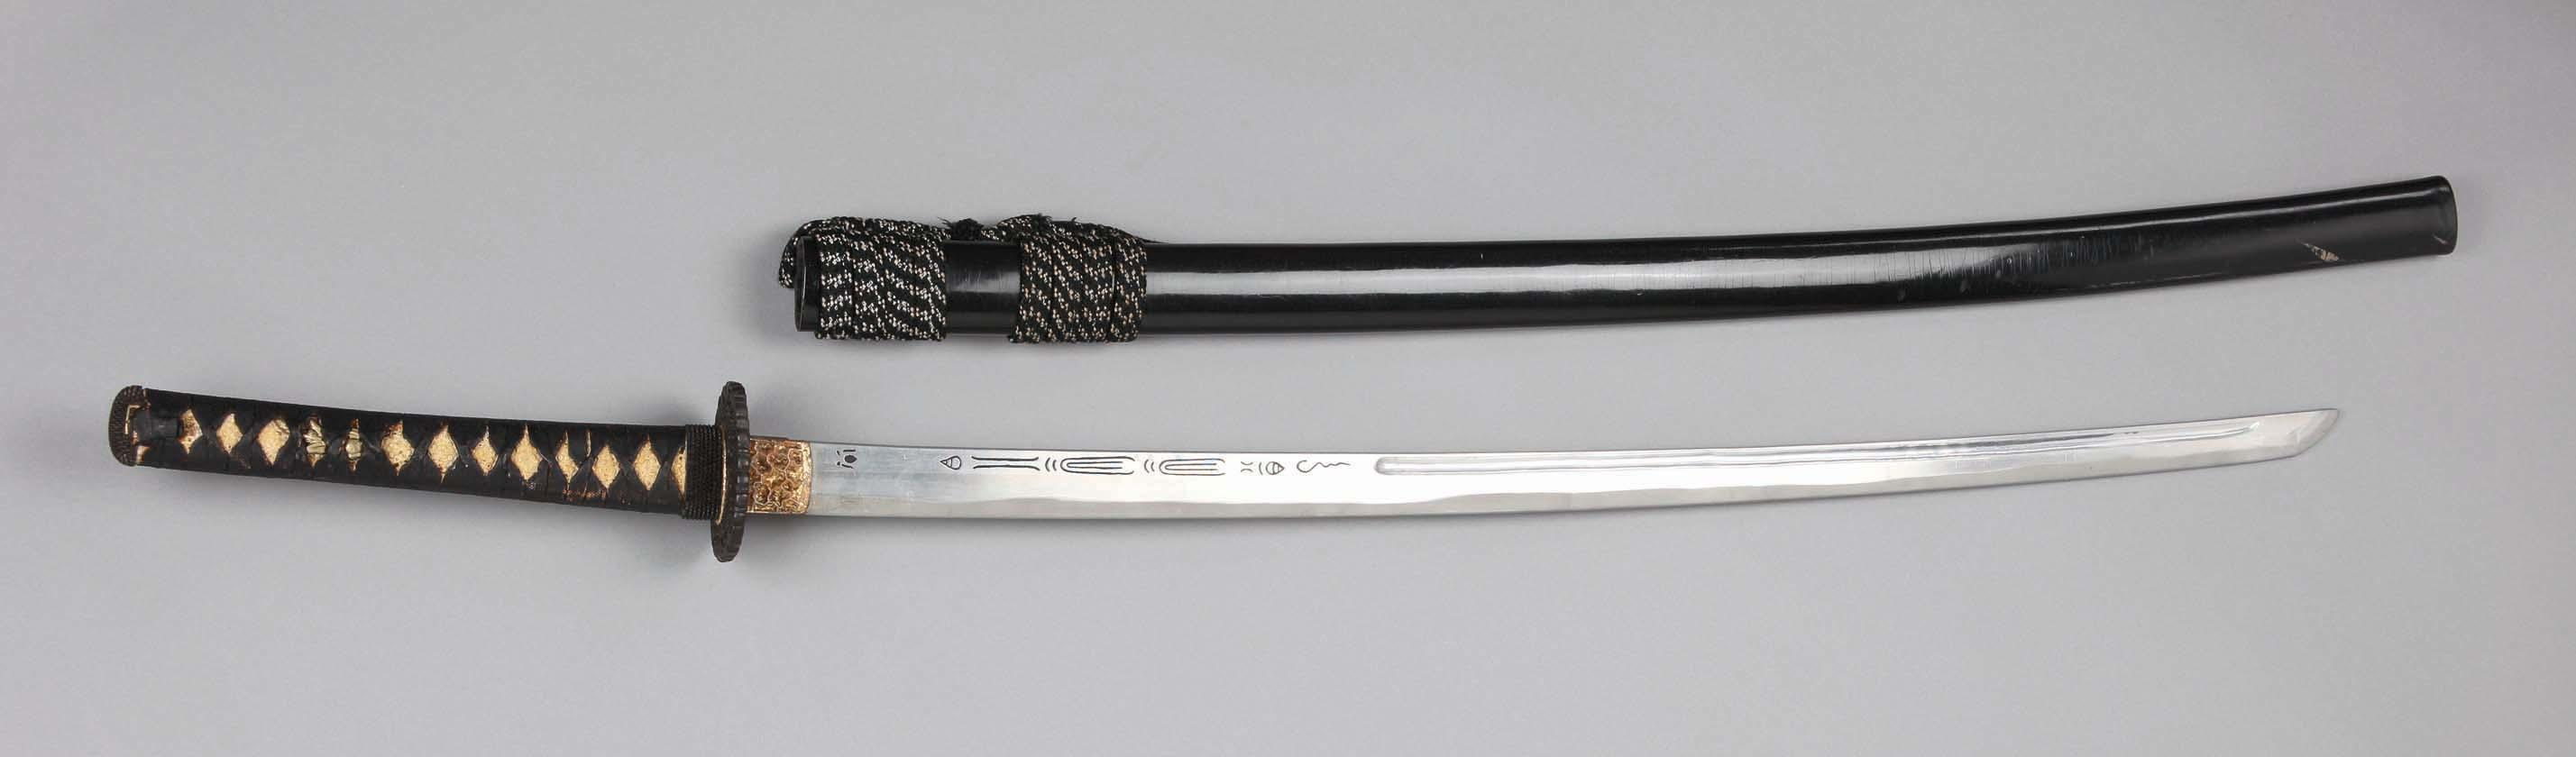 Image 3 Collection Of Tom Cruise And Ken Watanabe Prop Hero Swords Weapons From